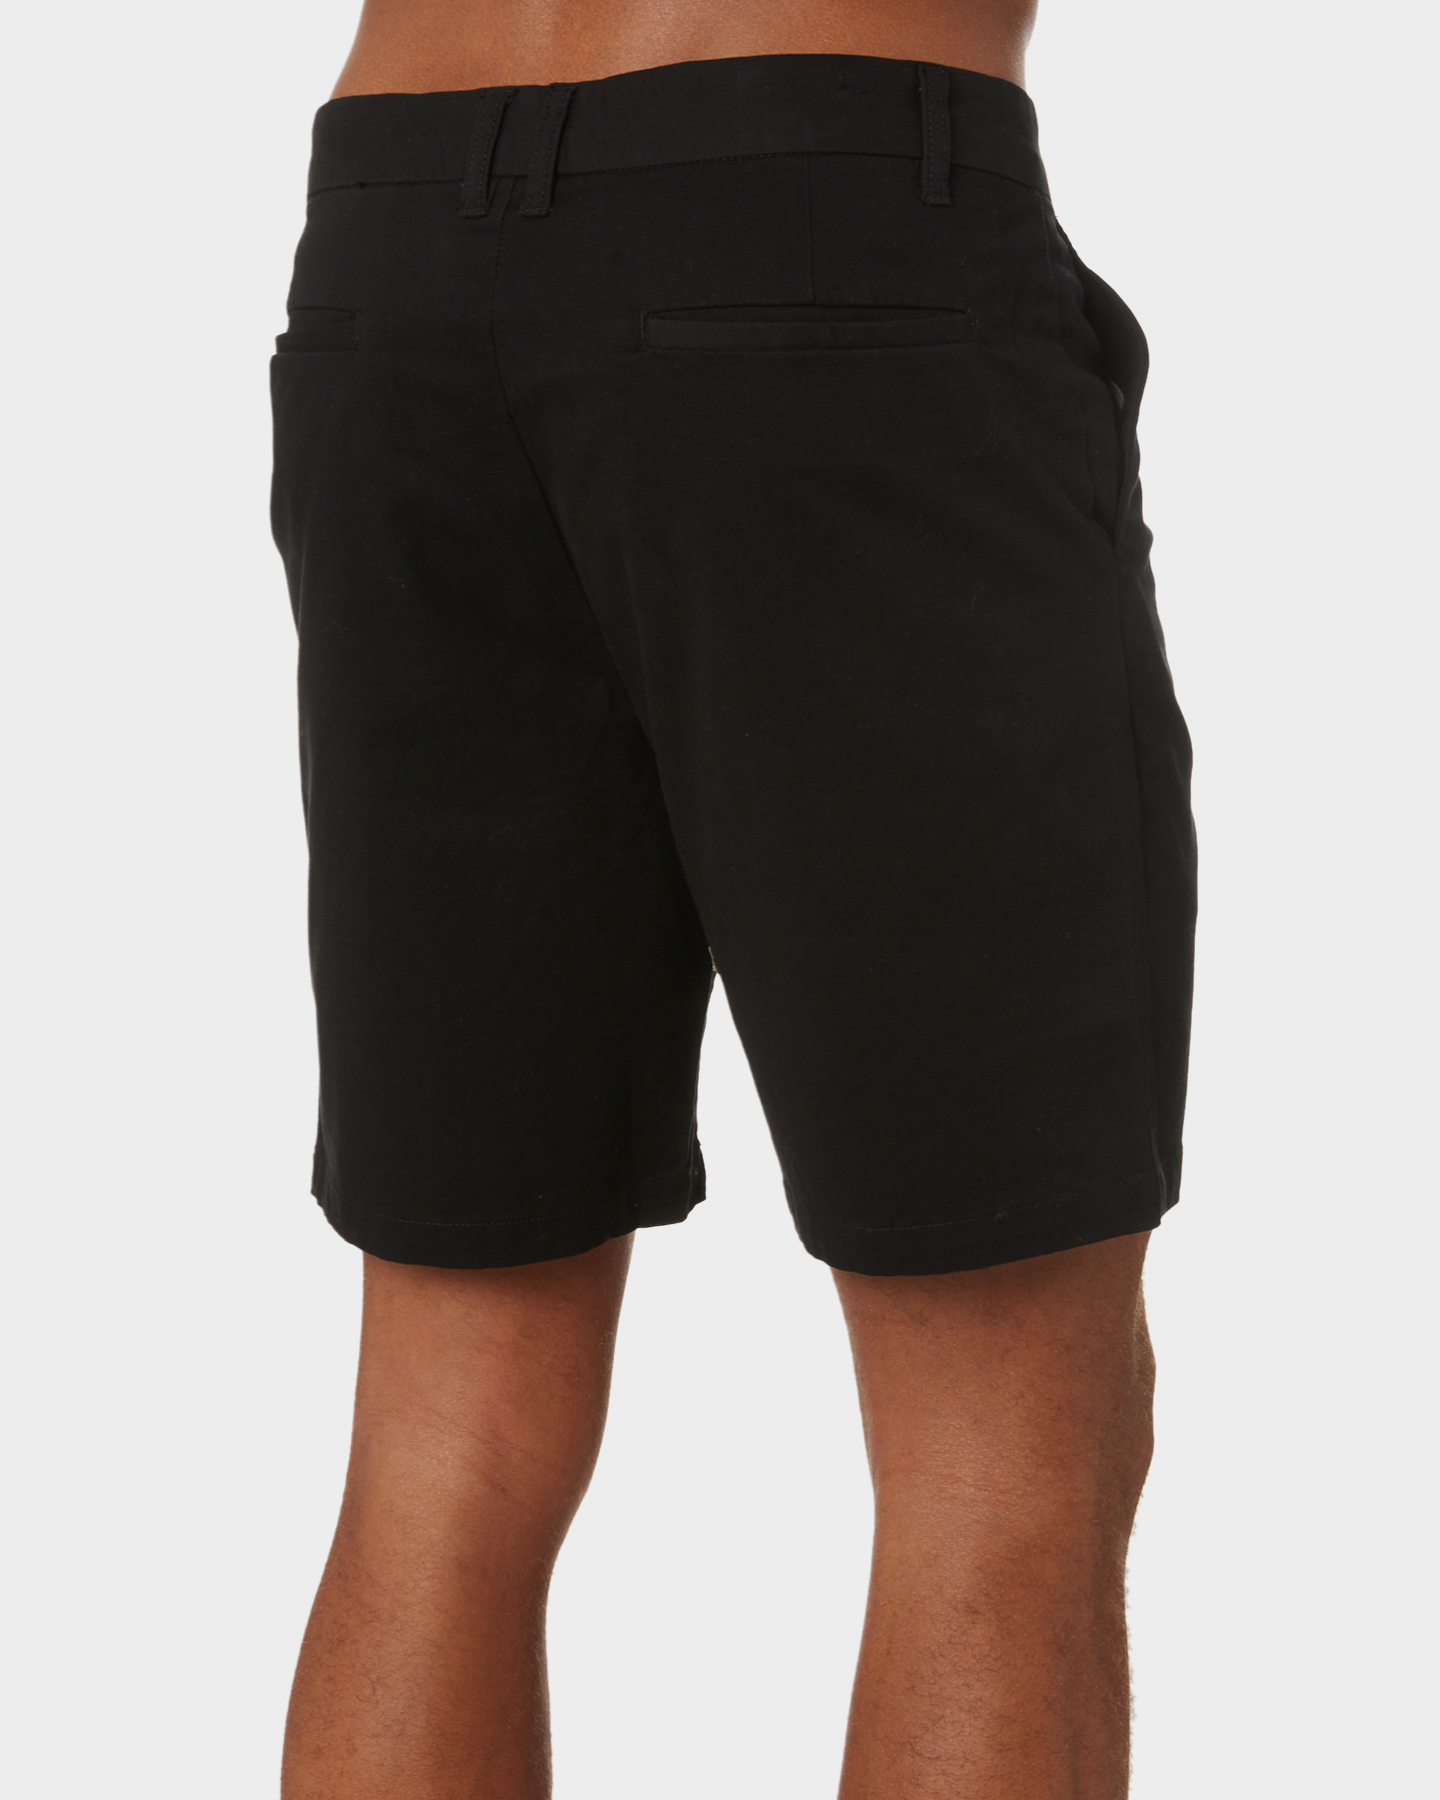 New-Swell-Men-039-s-Dandy-Mens-Chino-Short-Cotton-Fitted-Elastane-Blue thumbnail 9